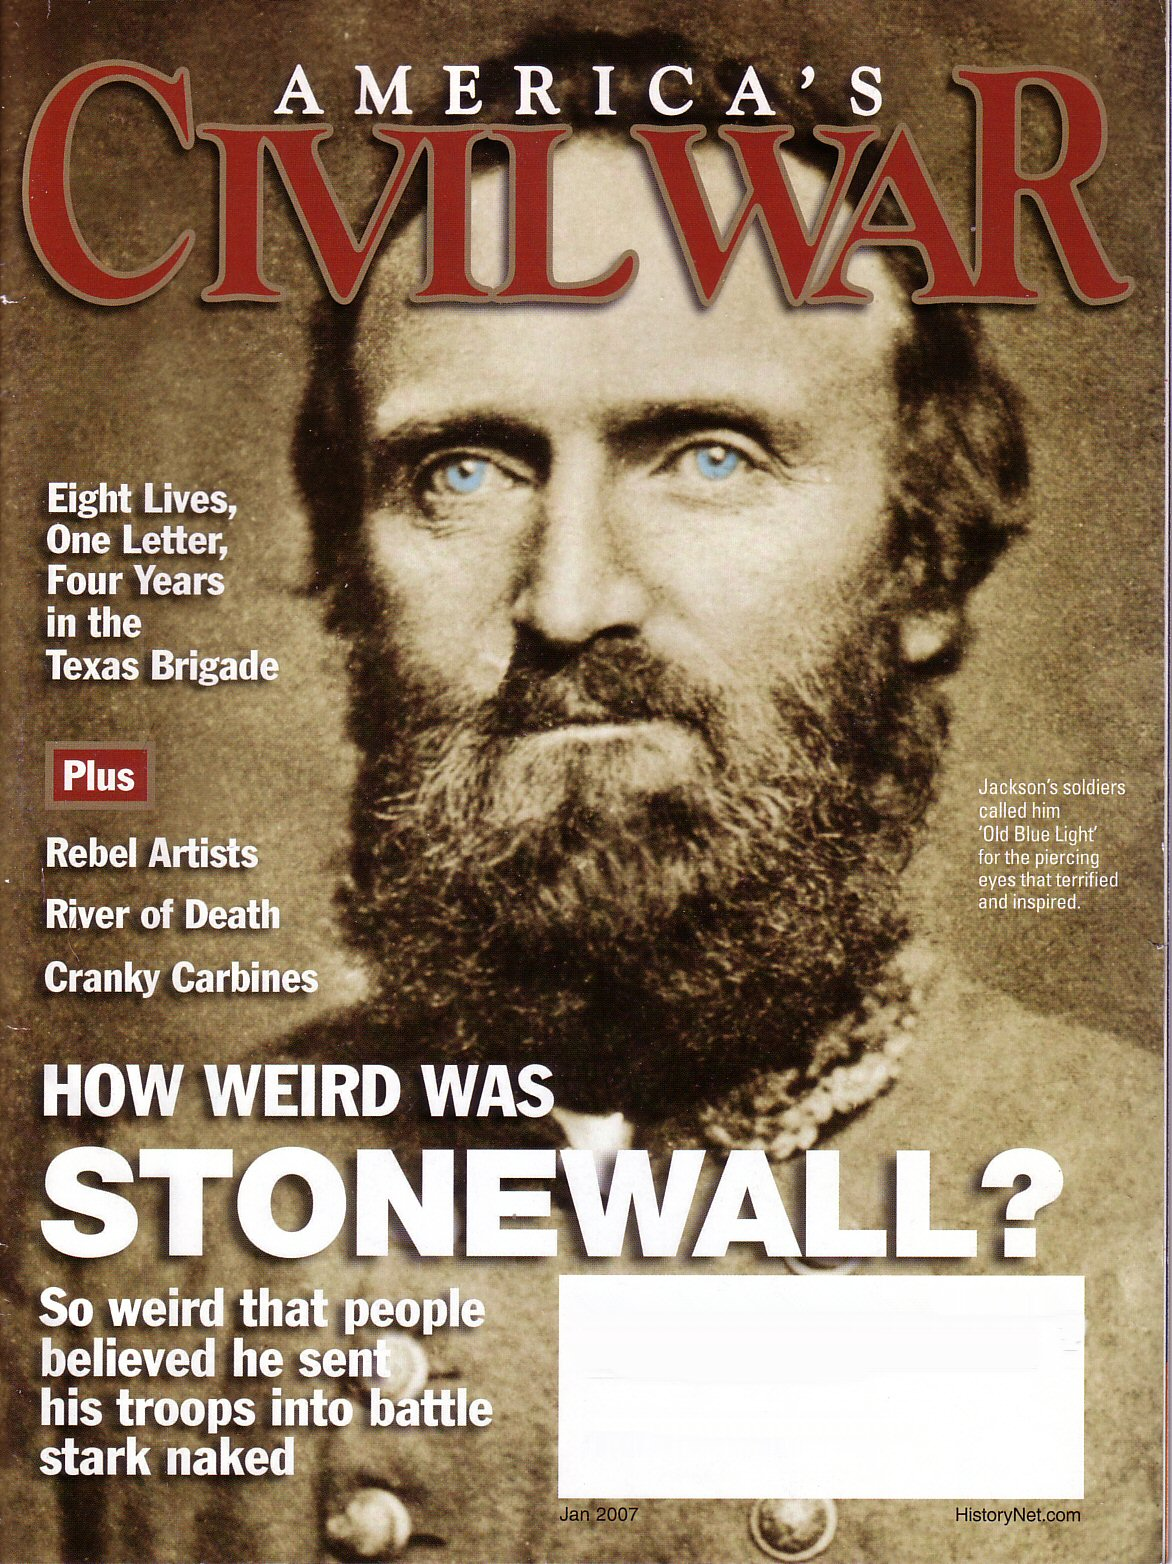 Americas Civil War, Volume 19, Number 6 (January 2007)